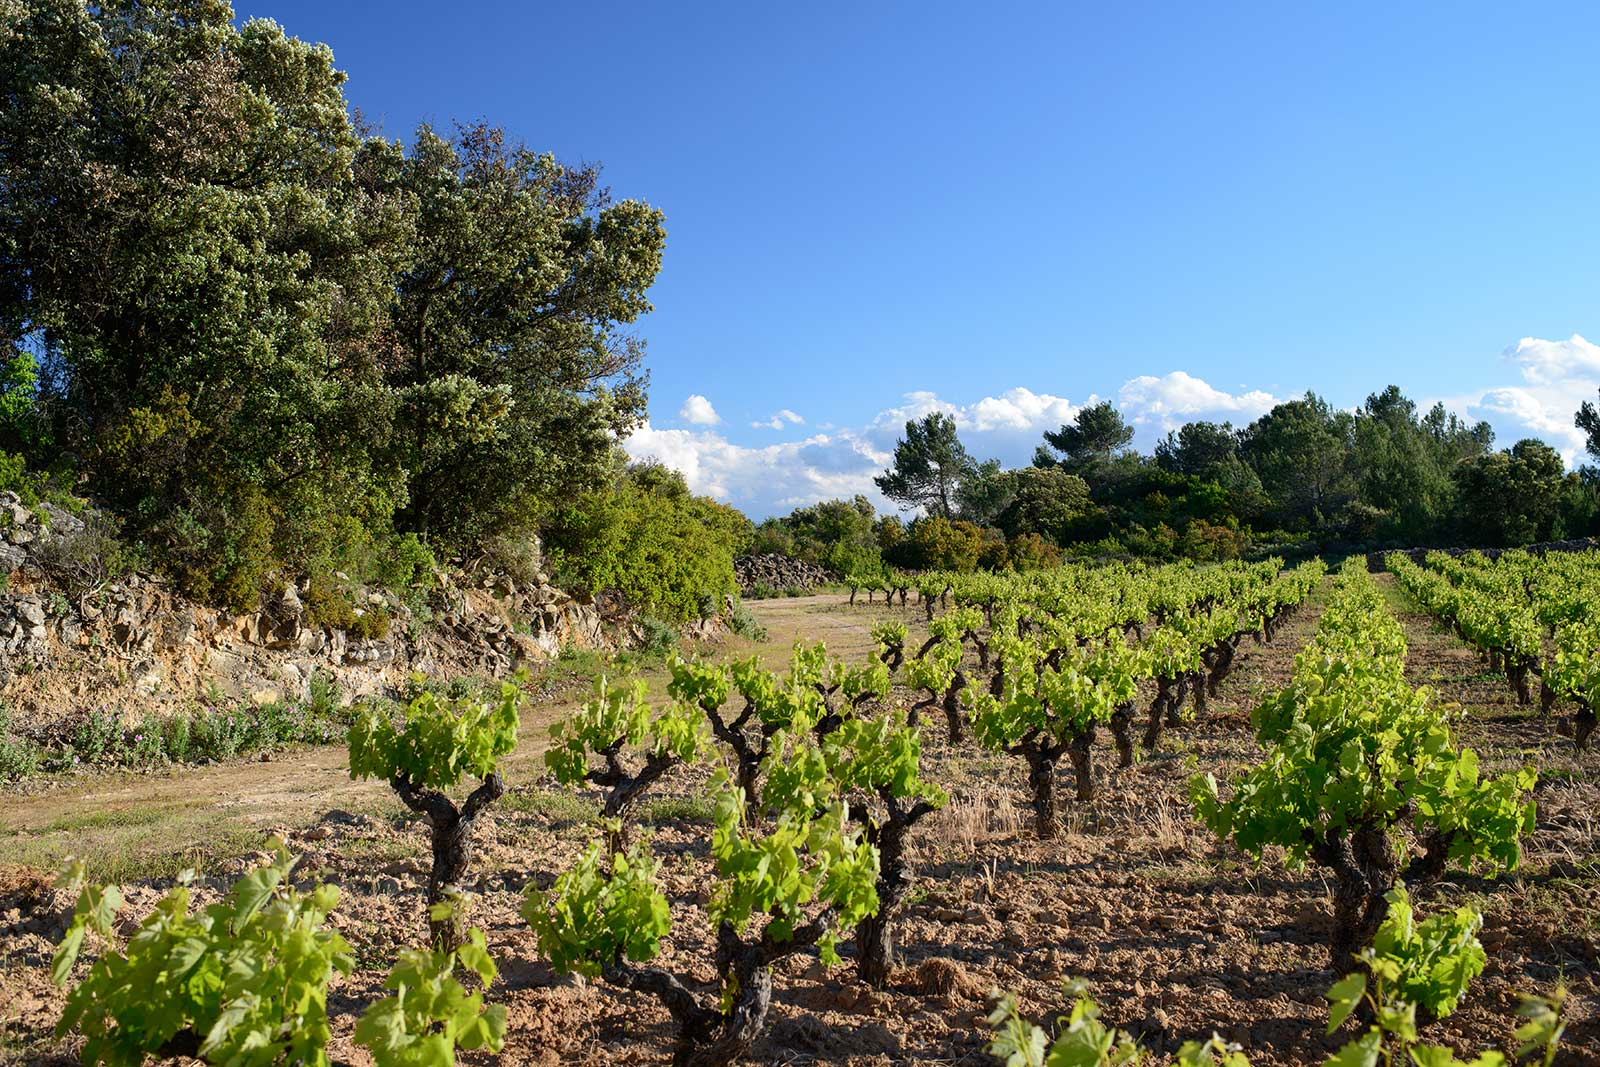 Bush-trained vines in Minervois have numerous advantages. Among them: lack of exposure to the wind. ©Domaine Anne Gros & Jean-Paul Tollot